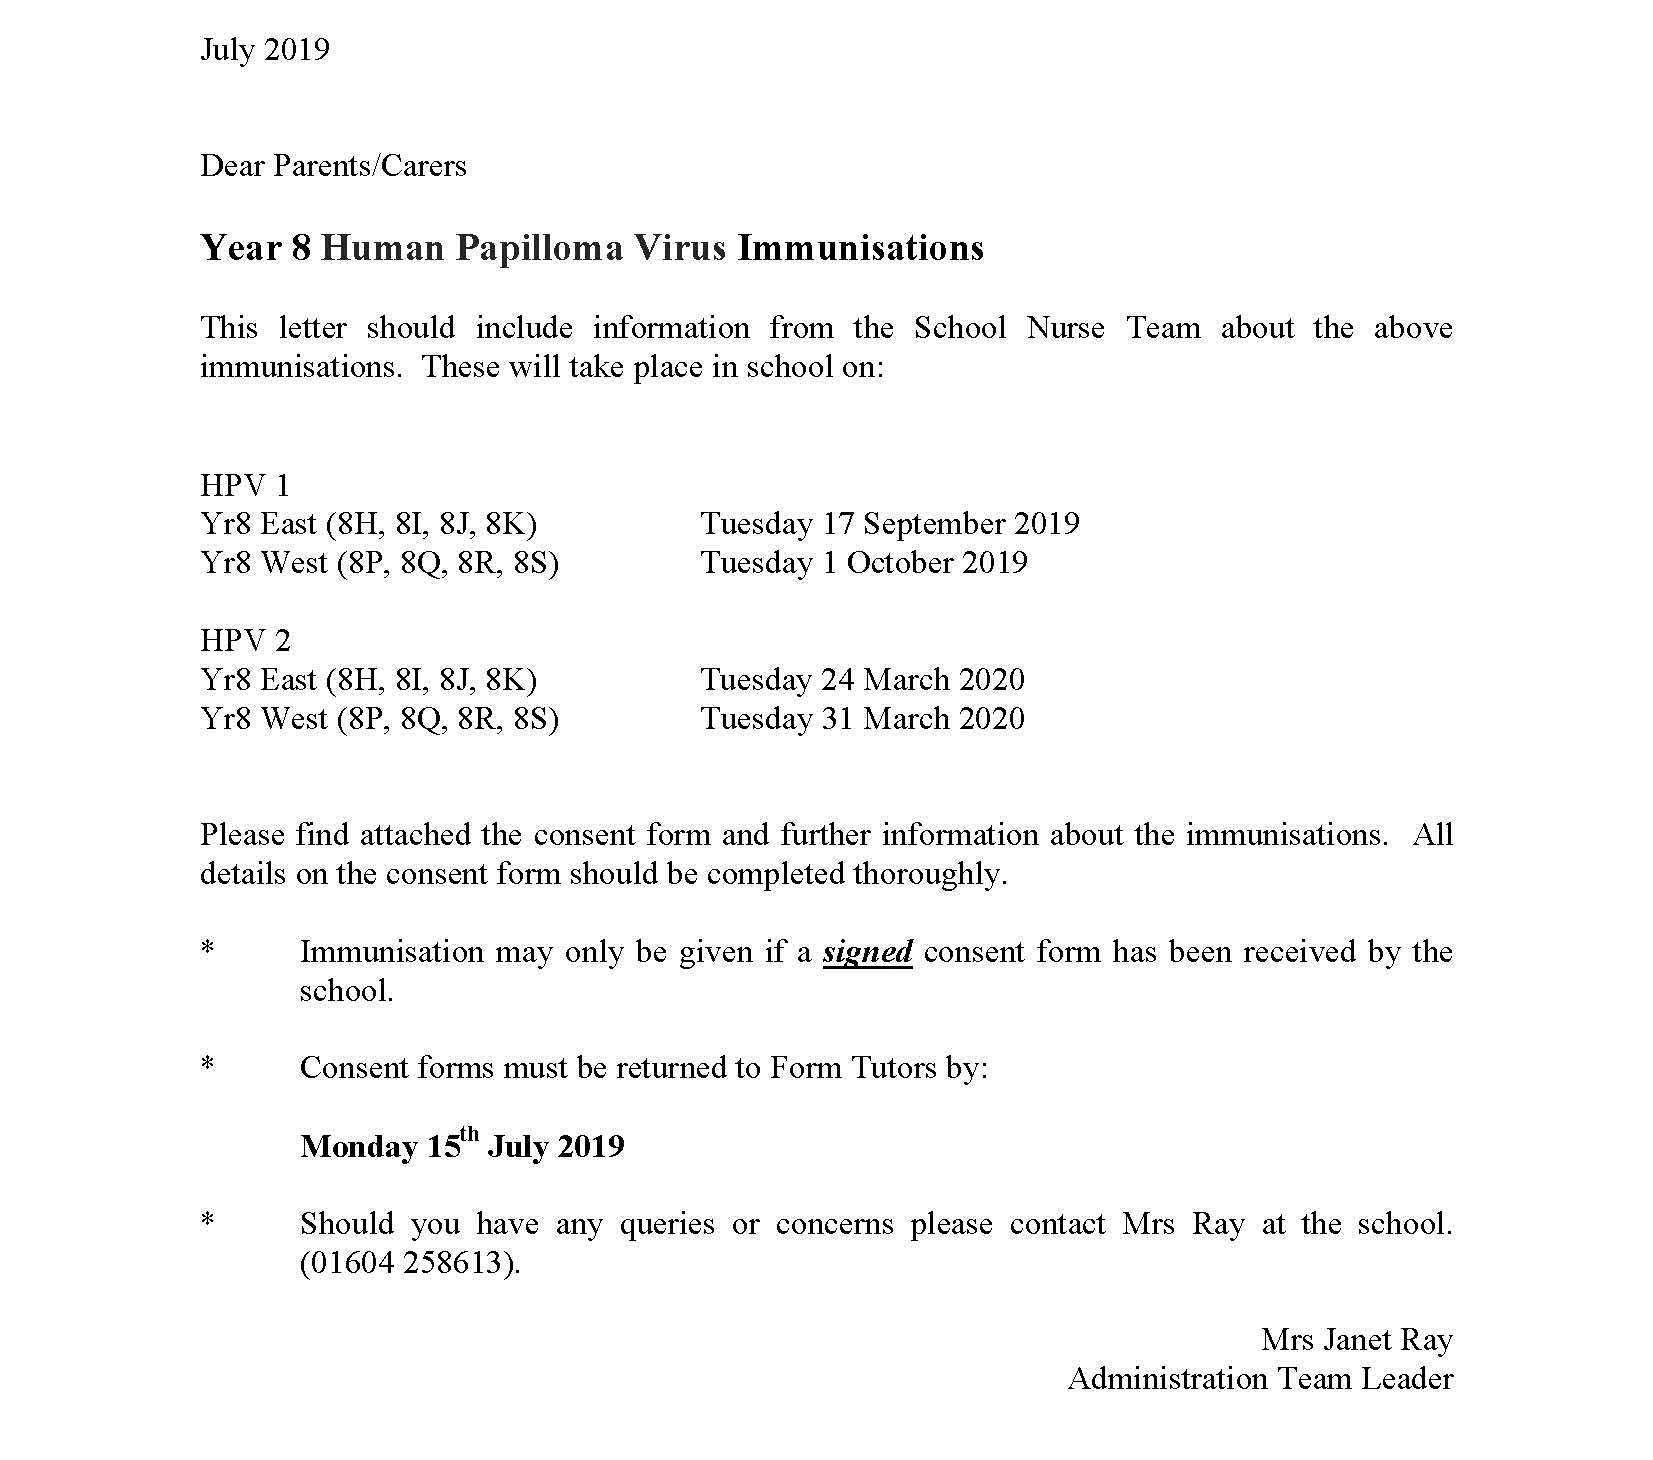 nhs hpv consent form)